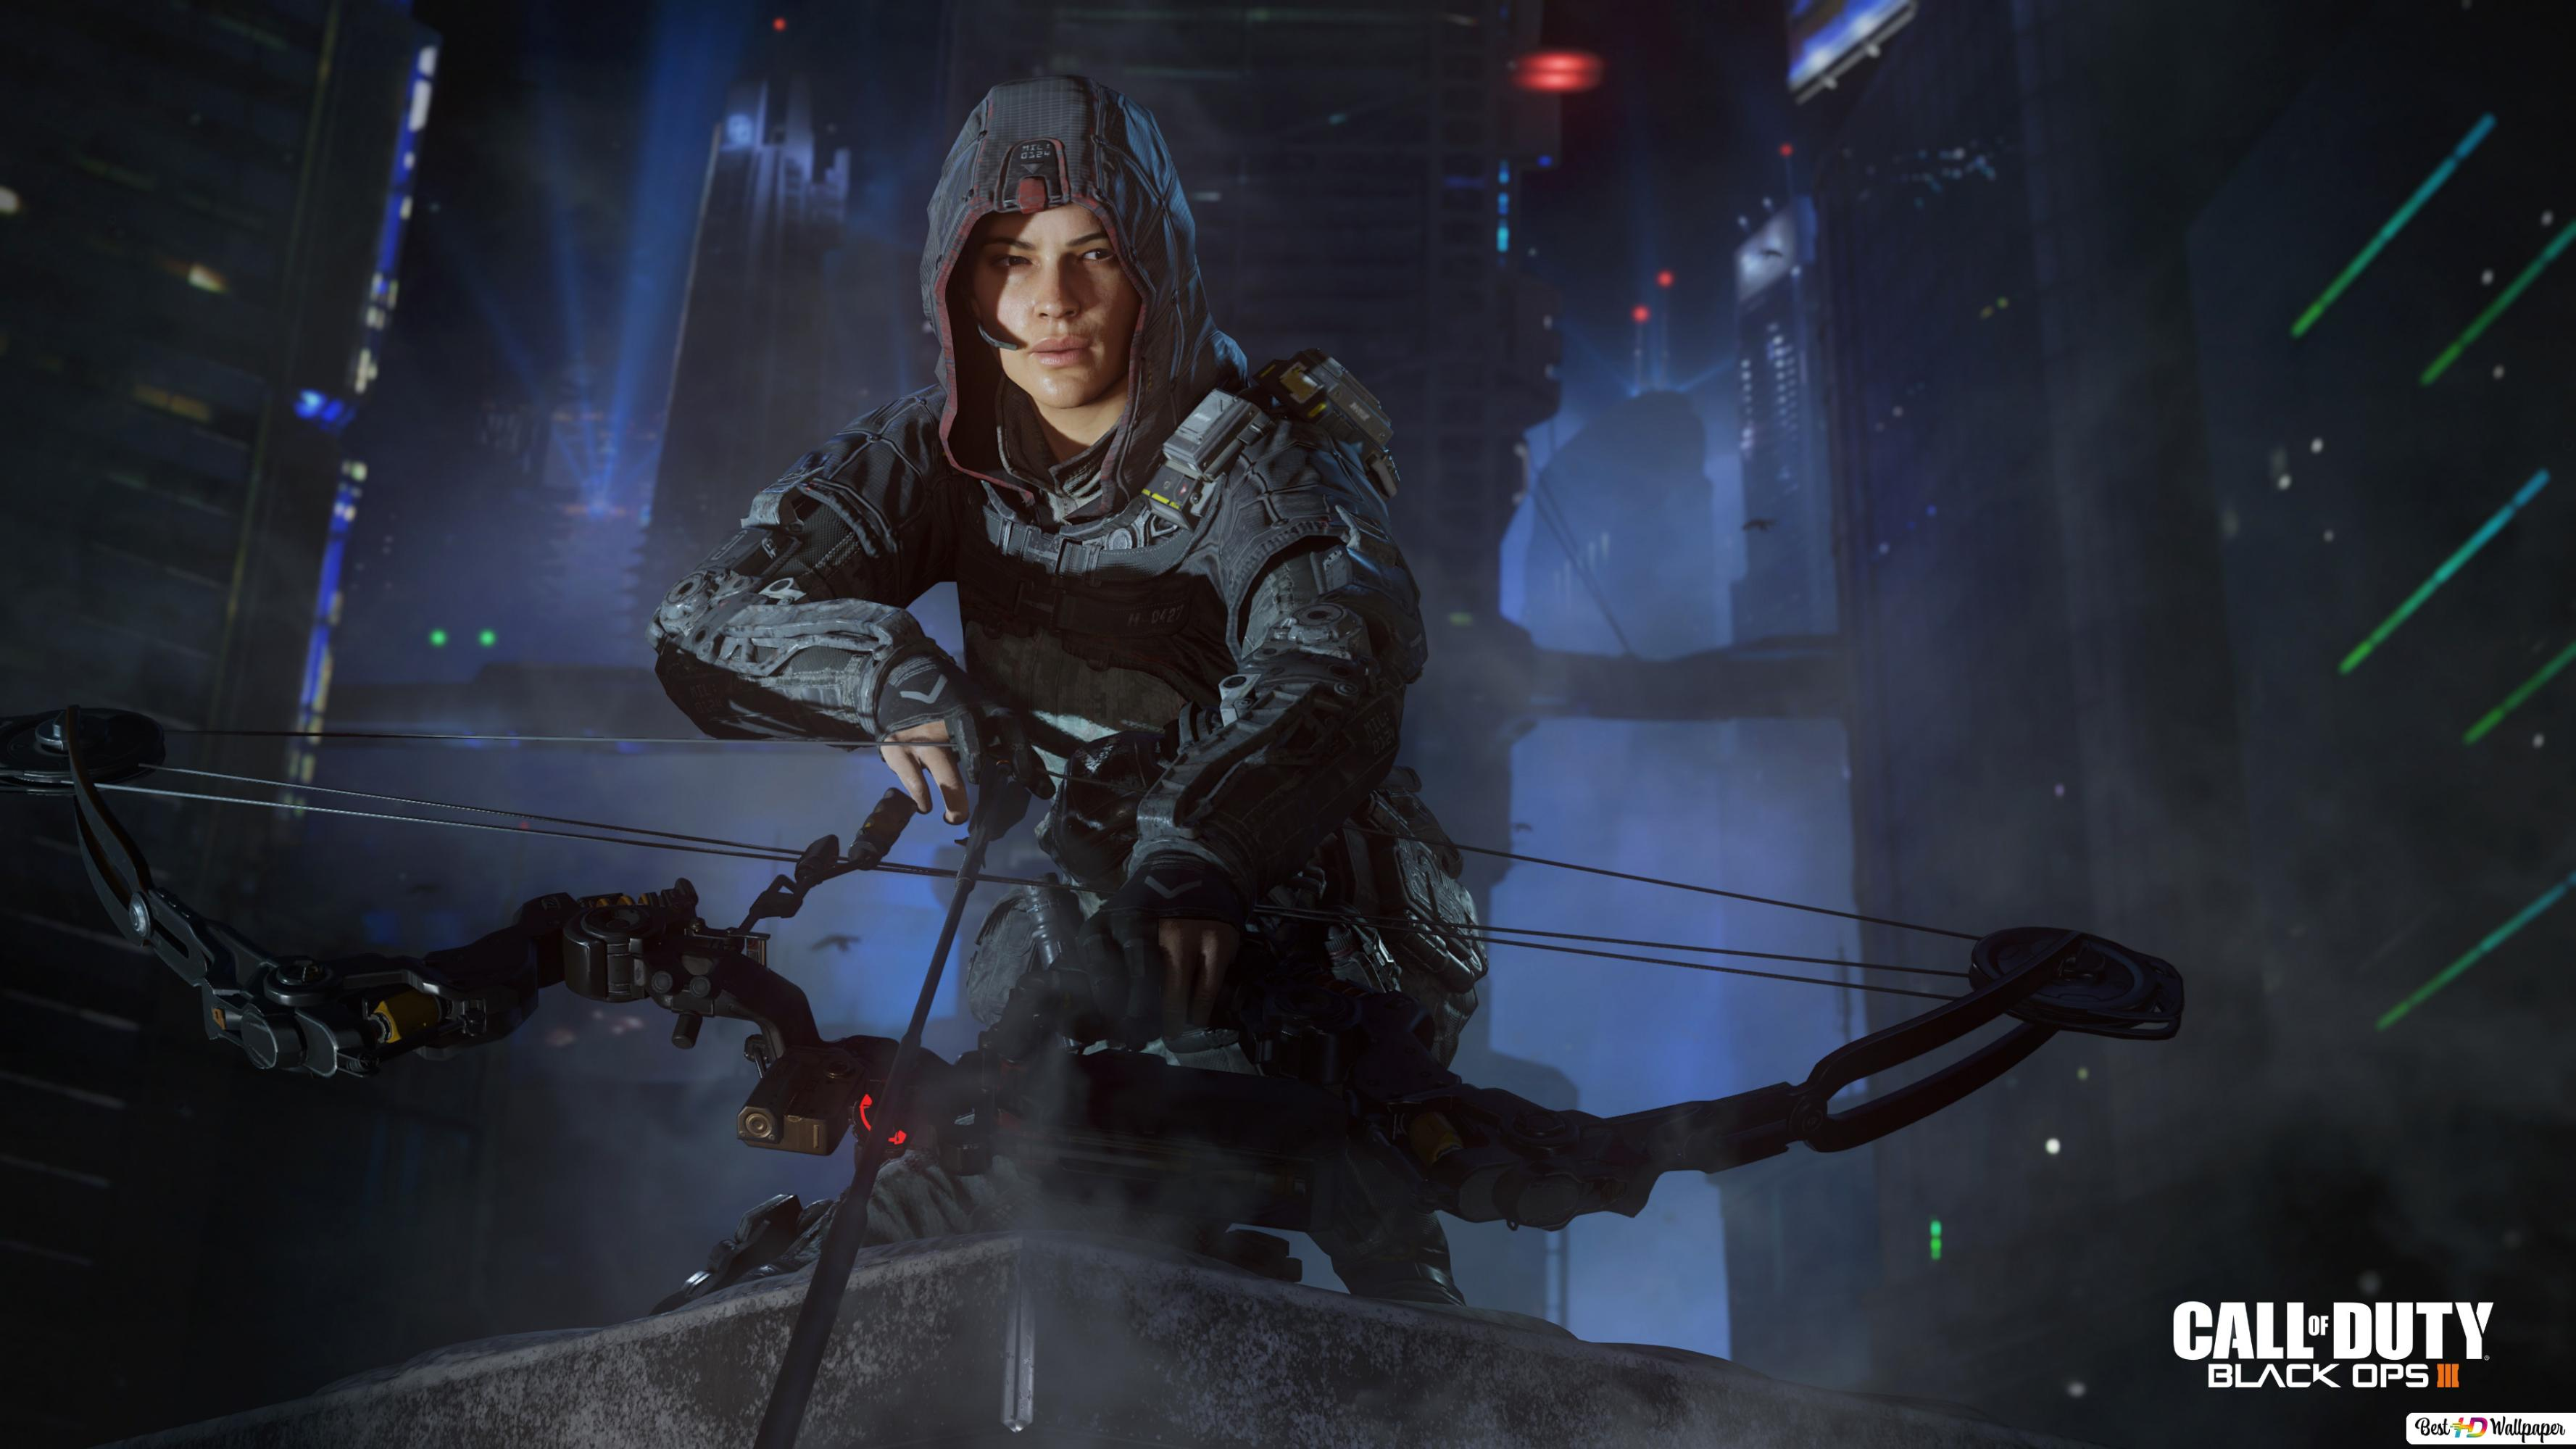 Call Of Duty Black Ops 3 Outrider Hd Wallpaper Download